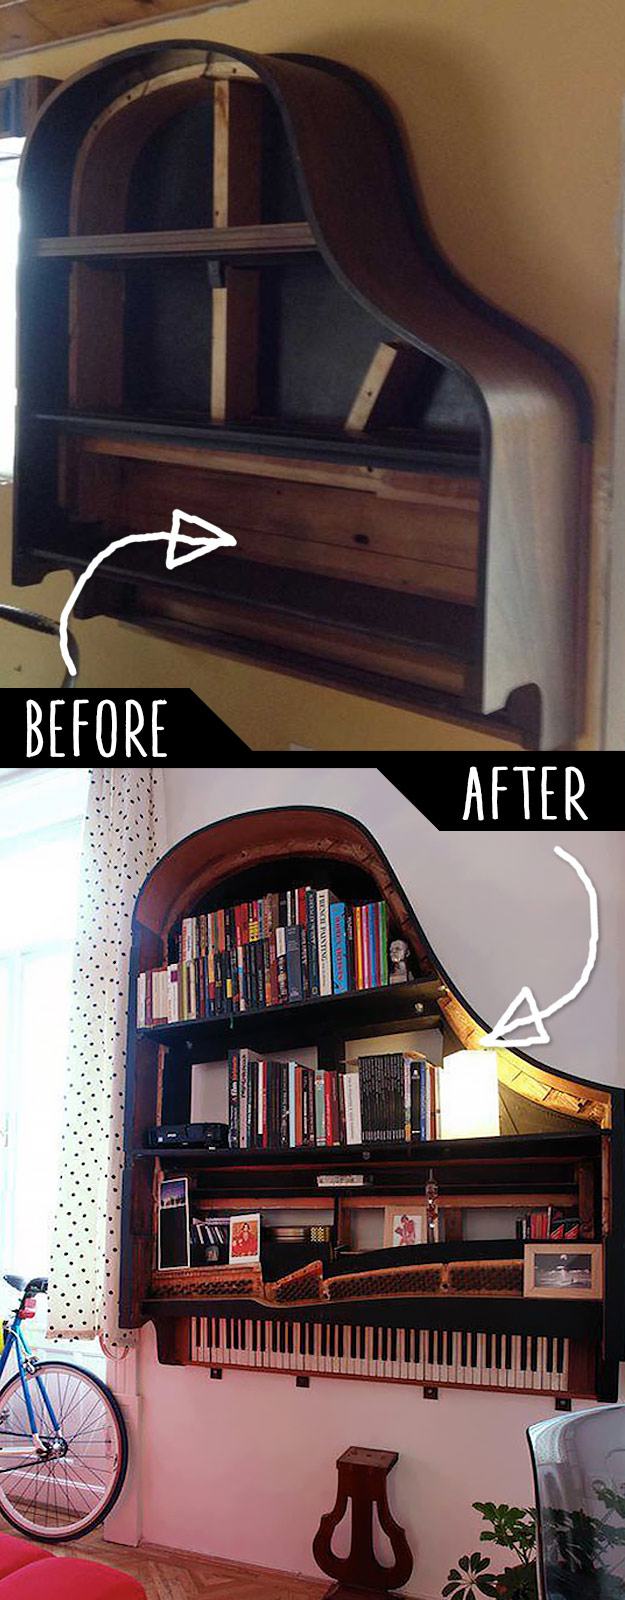 DIY Furniture Hacks | Grand Piano Bookshelf | Cool Ideas for Creative Do It Yourself Furniture Made From Things You Might Not Expect - http://diyjoy.com/diy-furniture-hacks